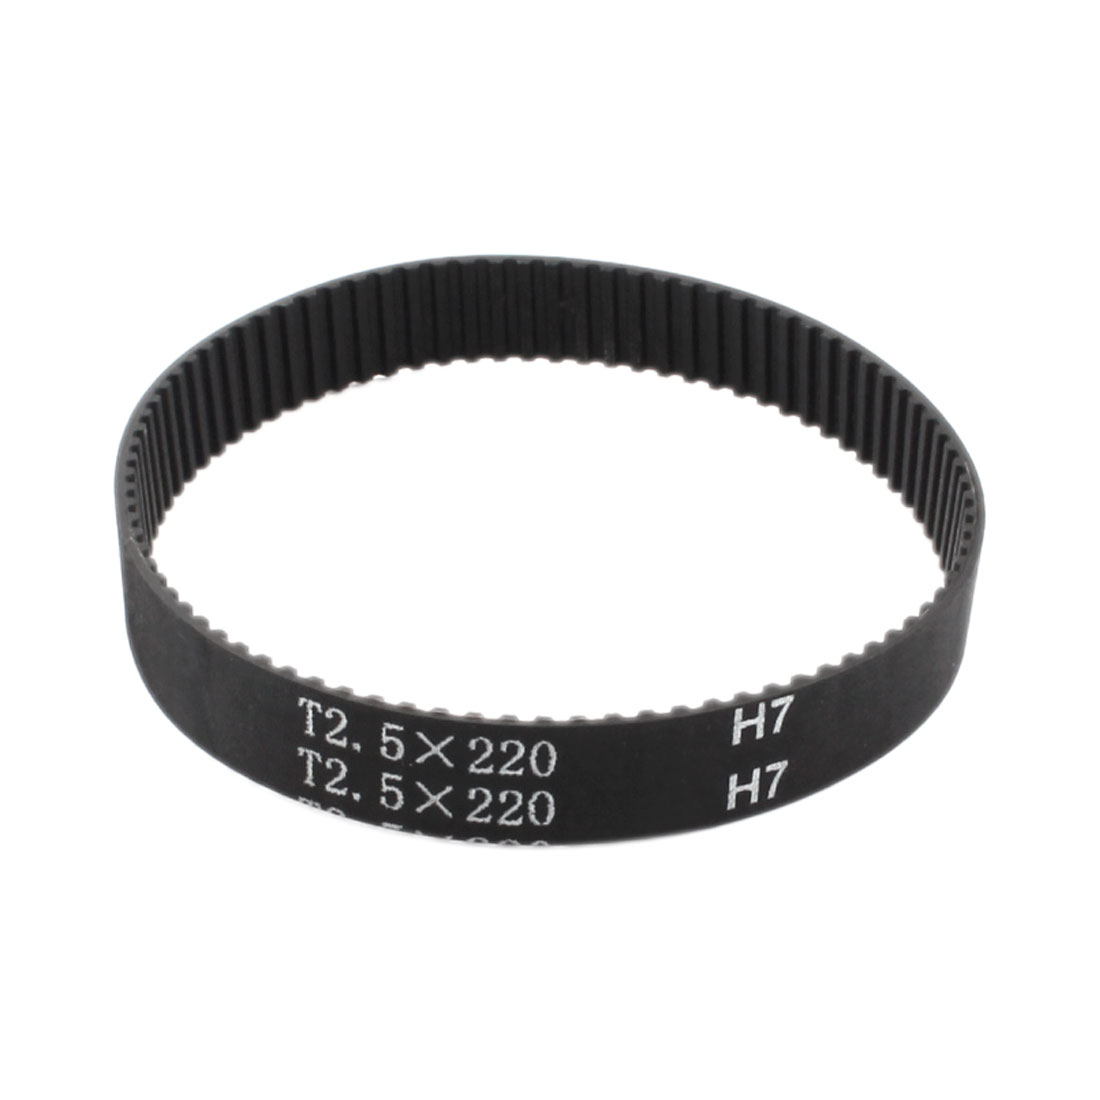 T2.5x220 88-Tooth 2.5mm Pitch 10mm Width Industrial Stepper Motor 3D Printer Groove Synchronous Timing Belt 220mm Girth